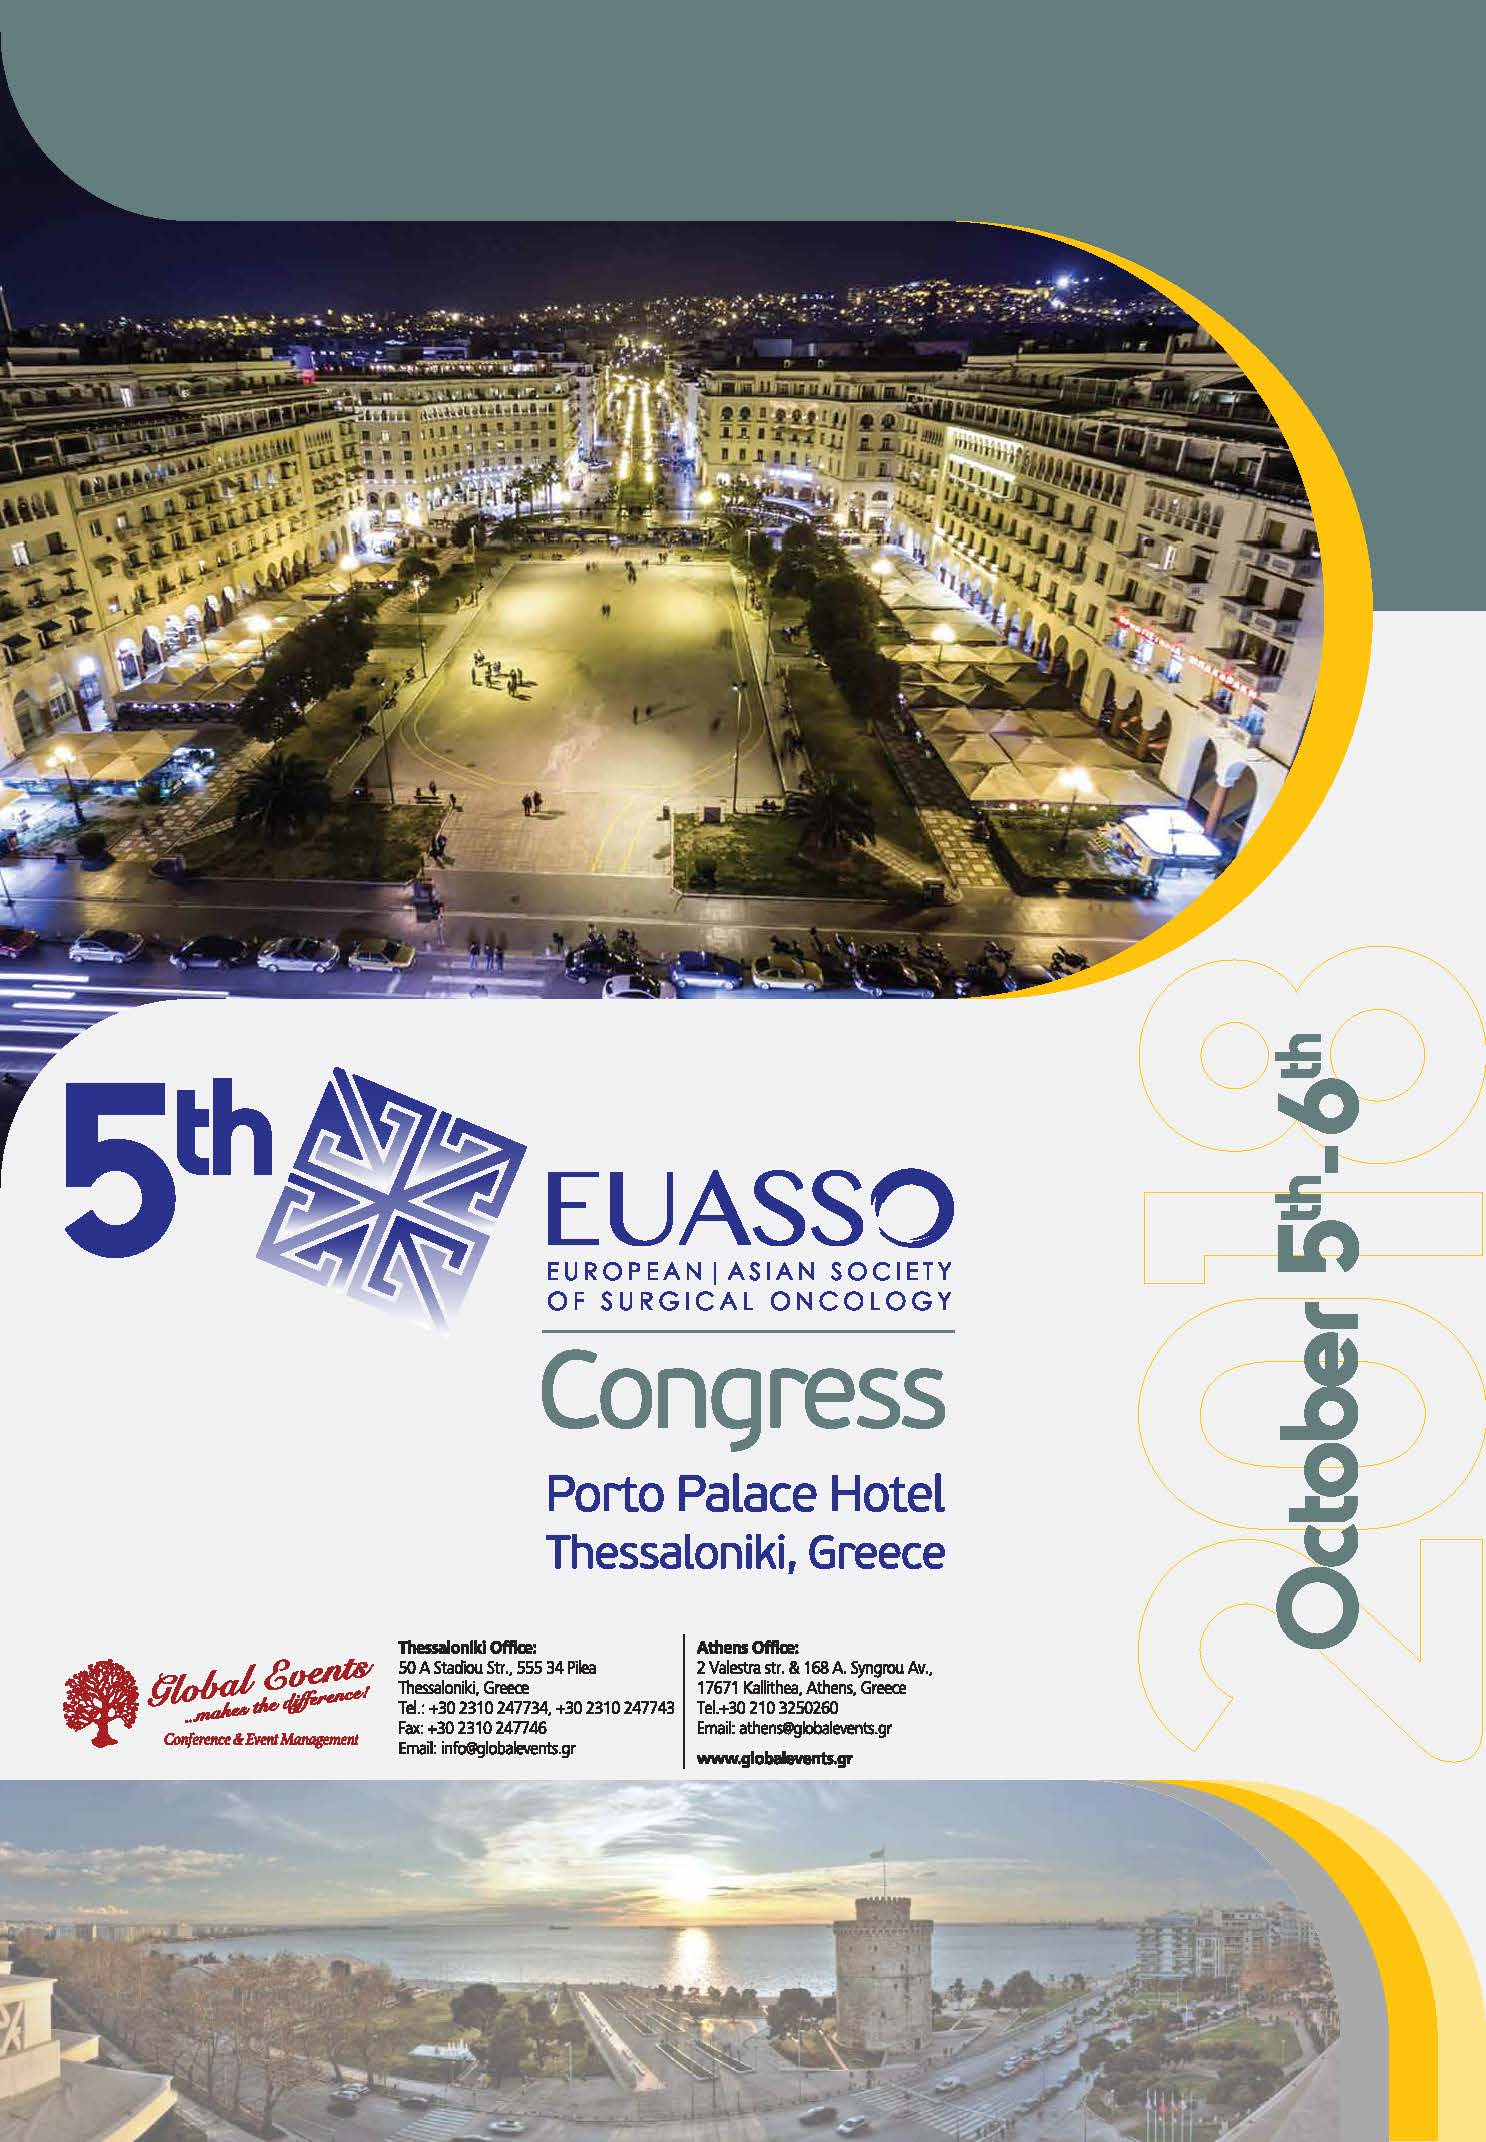 393. 5th EUASSO Congress